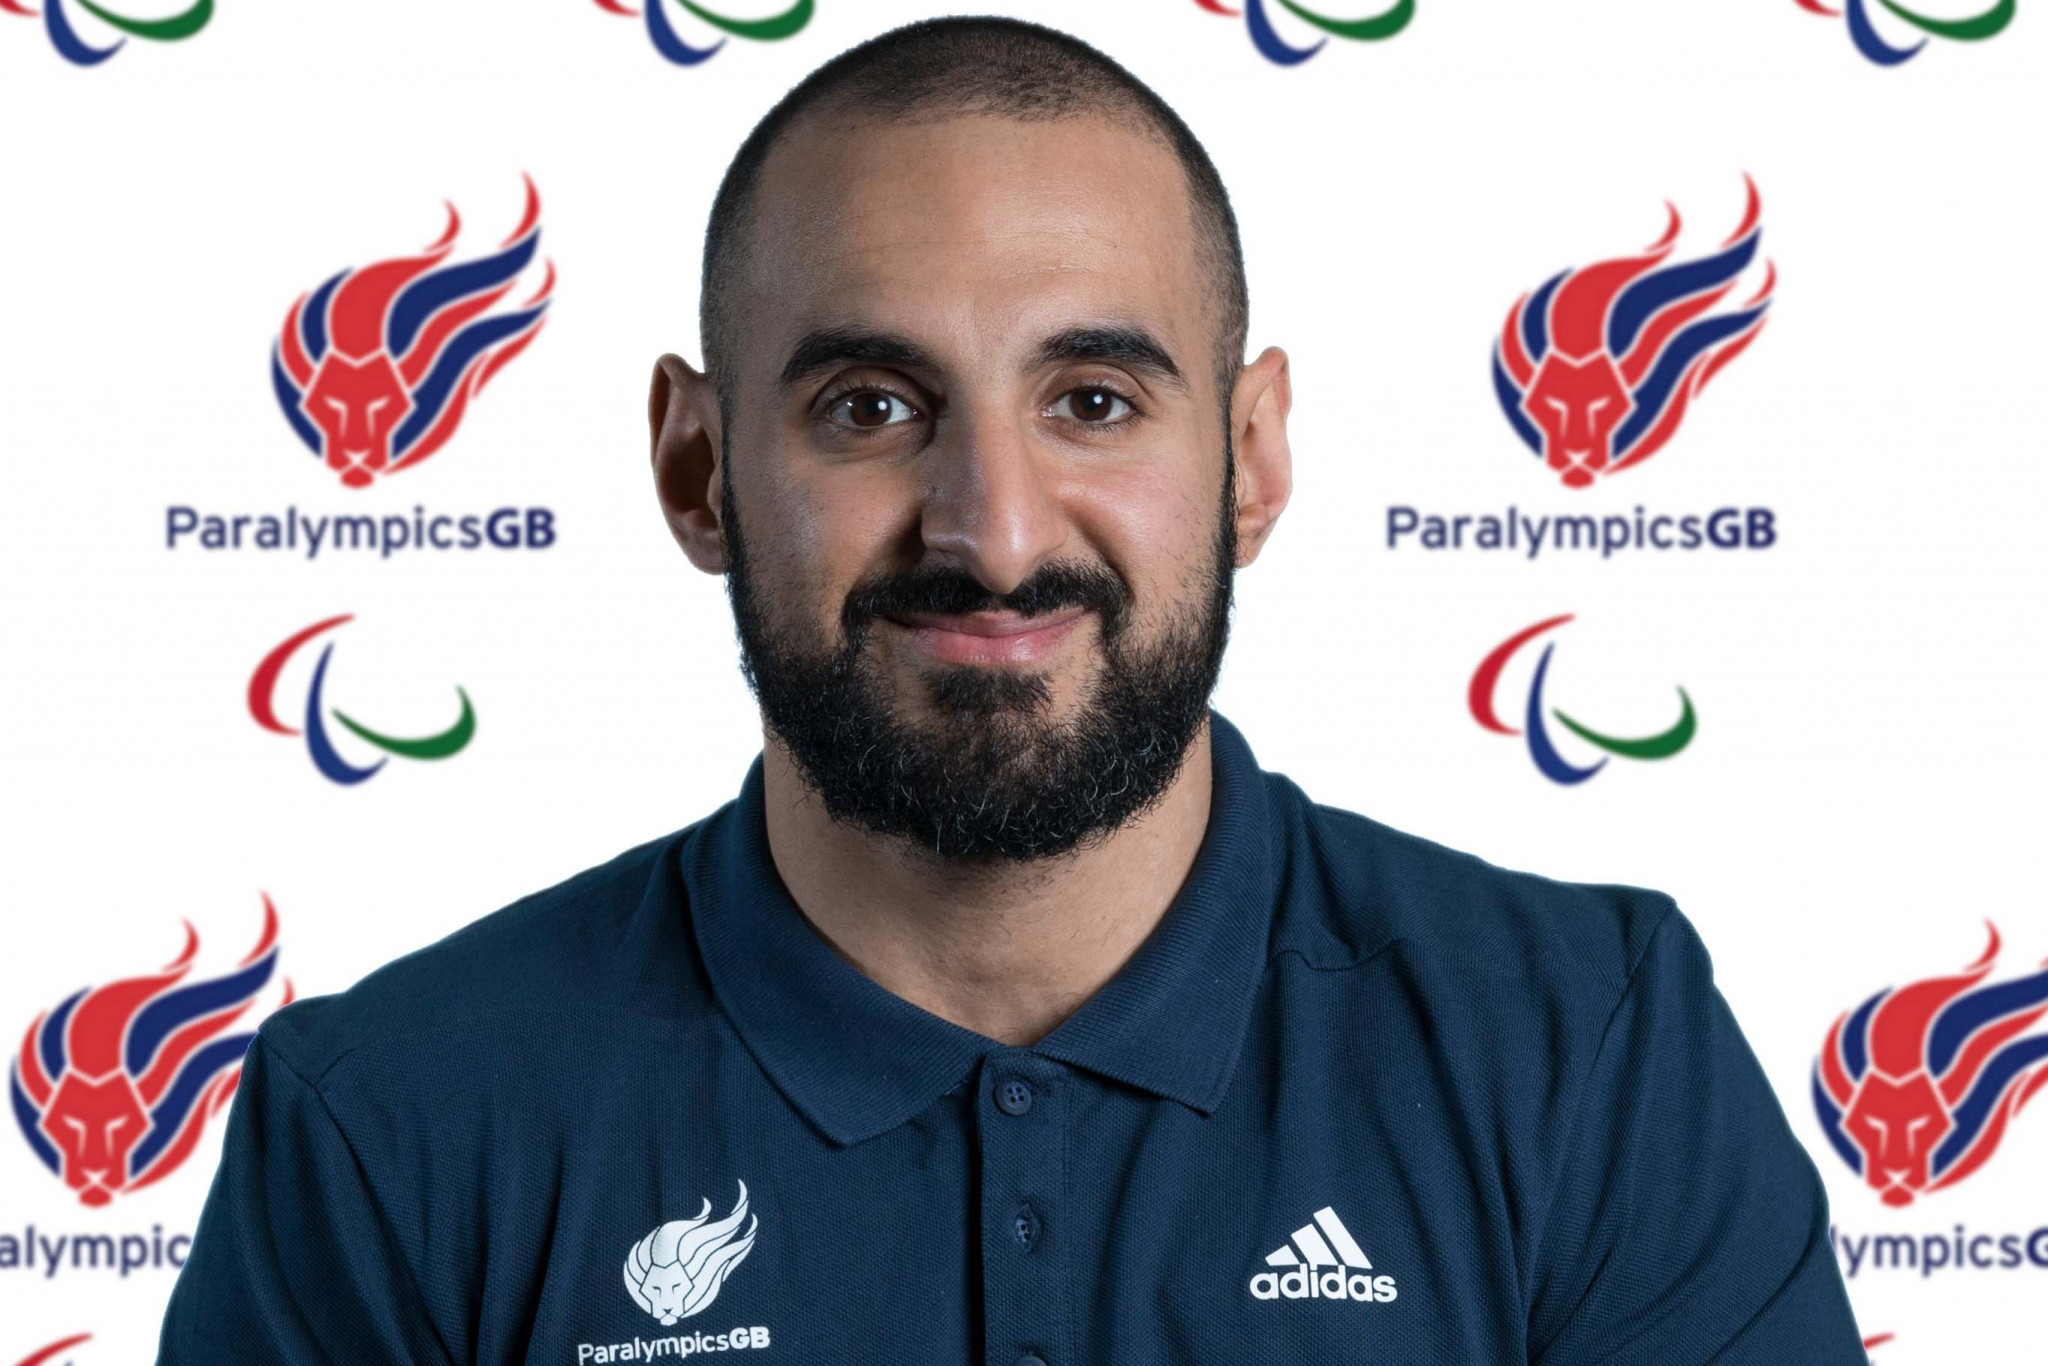 British powerlifter urges IPC for more transparency over health measures ahead of Tokyo 2020